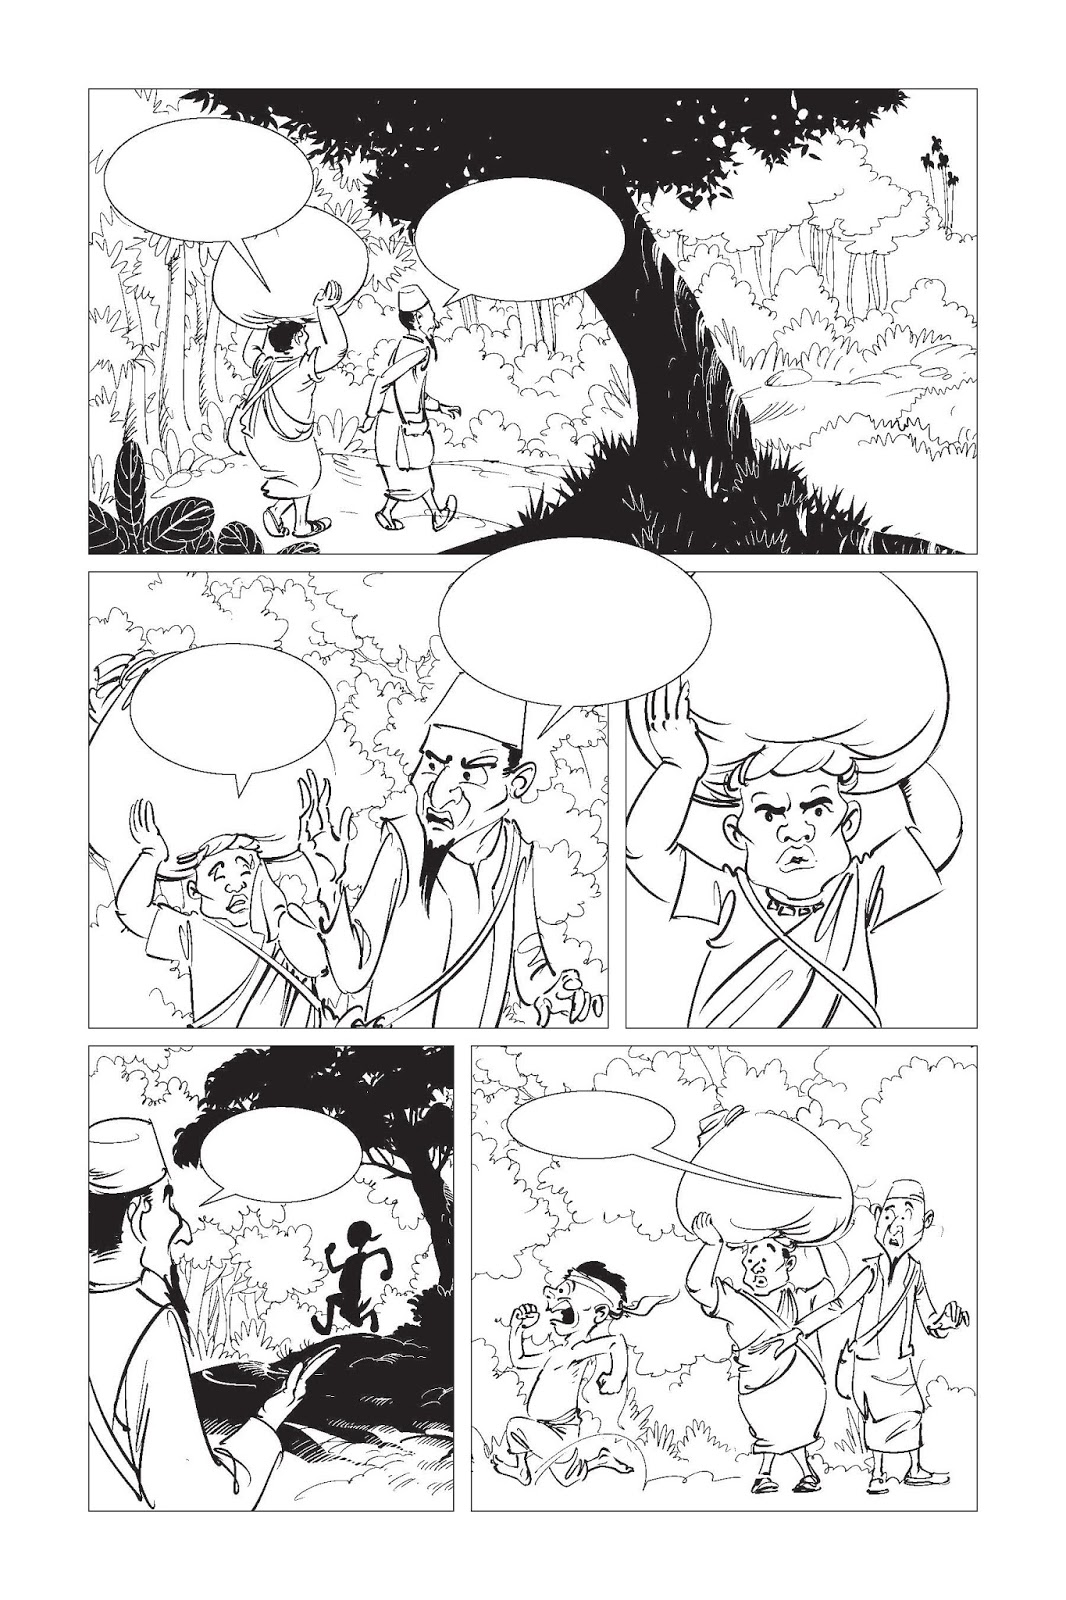 funny comics graphic novel page ink illustration